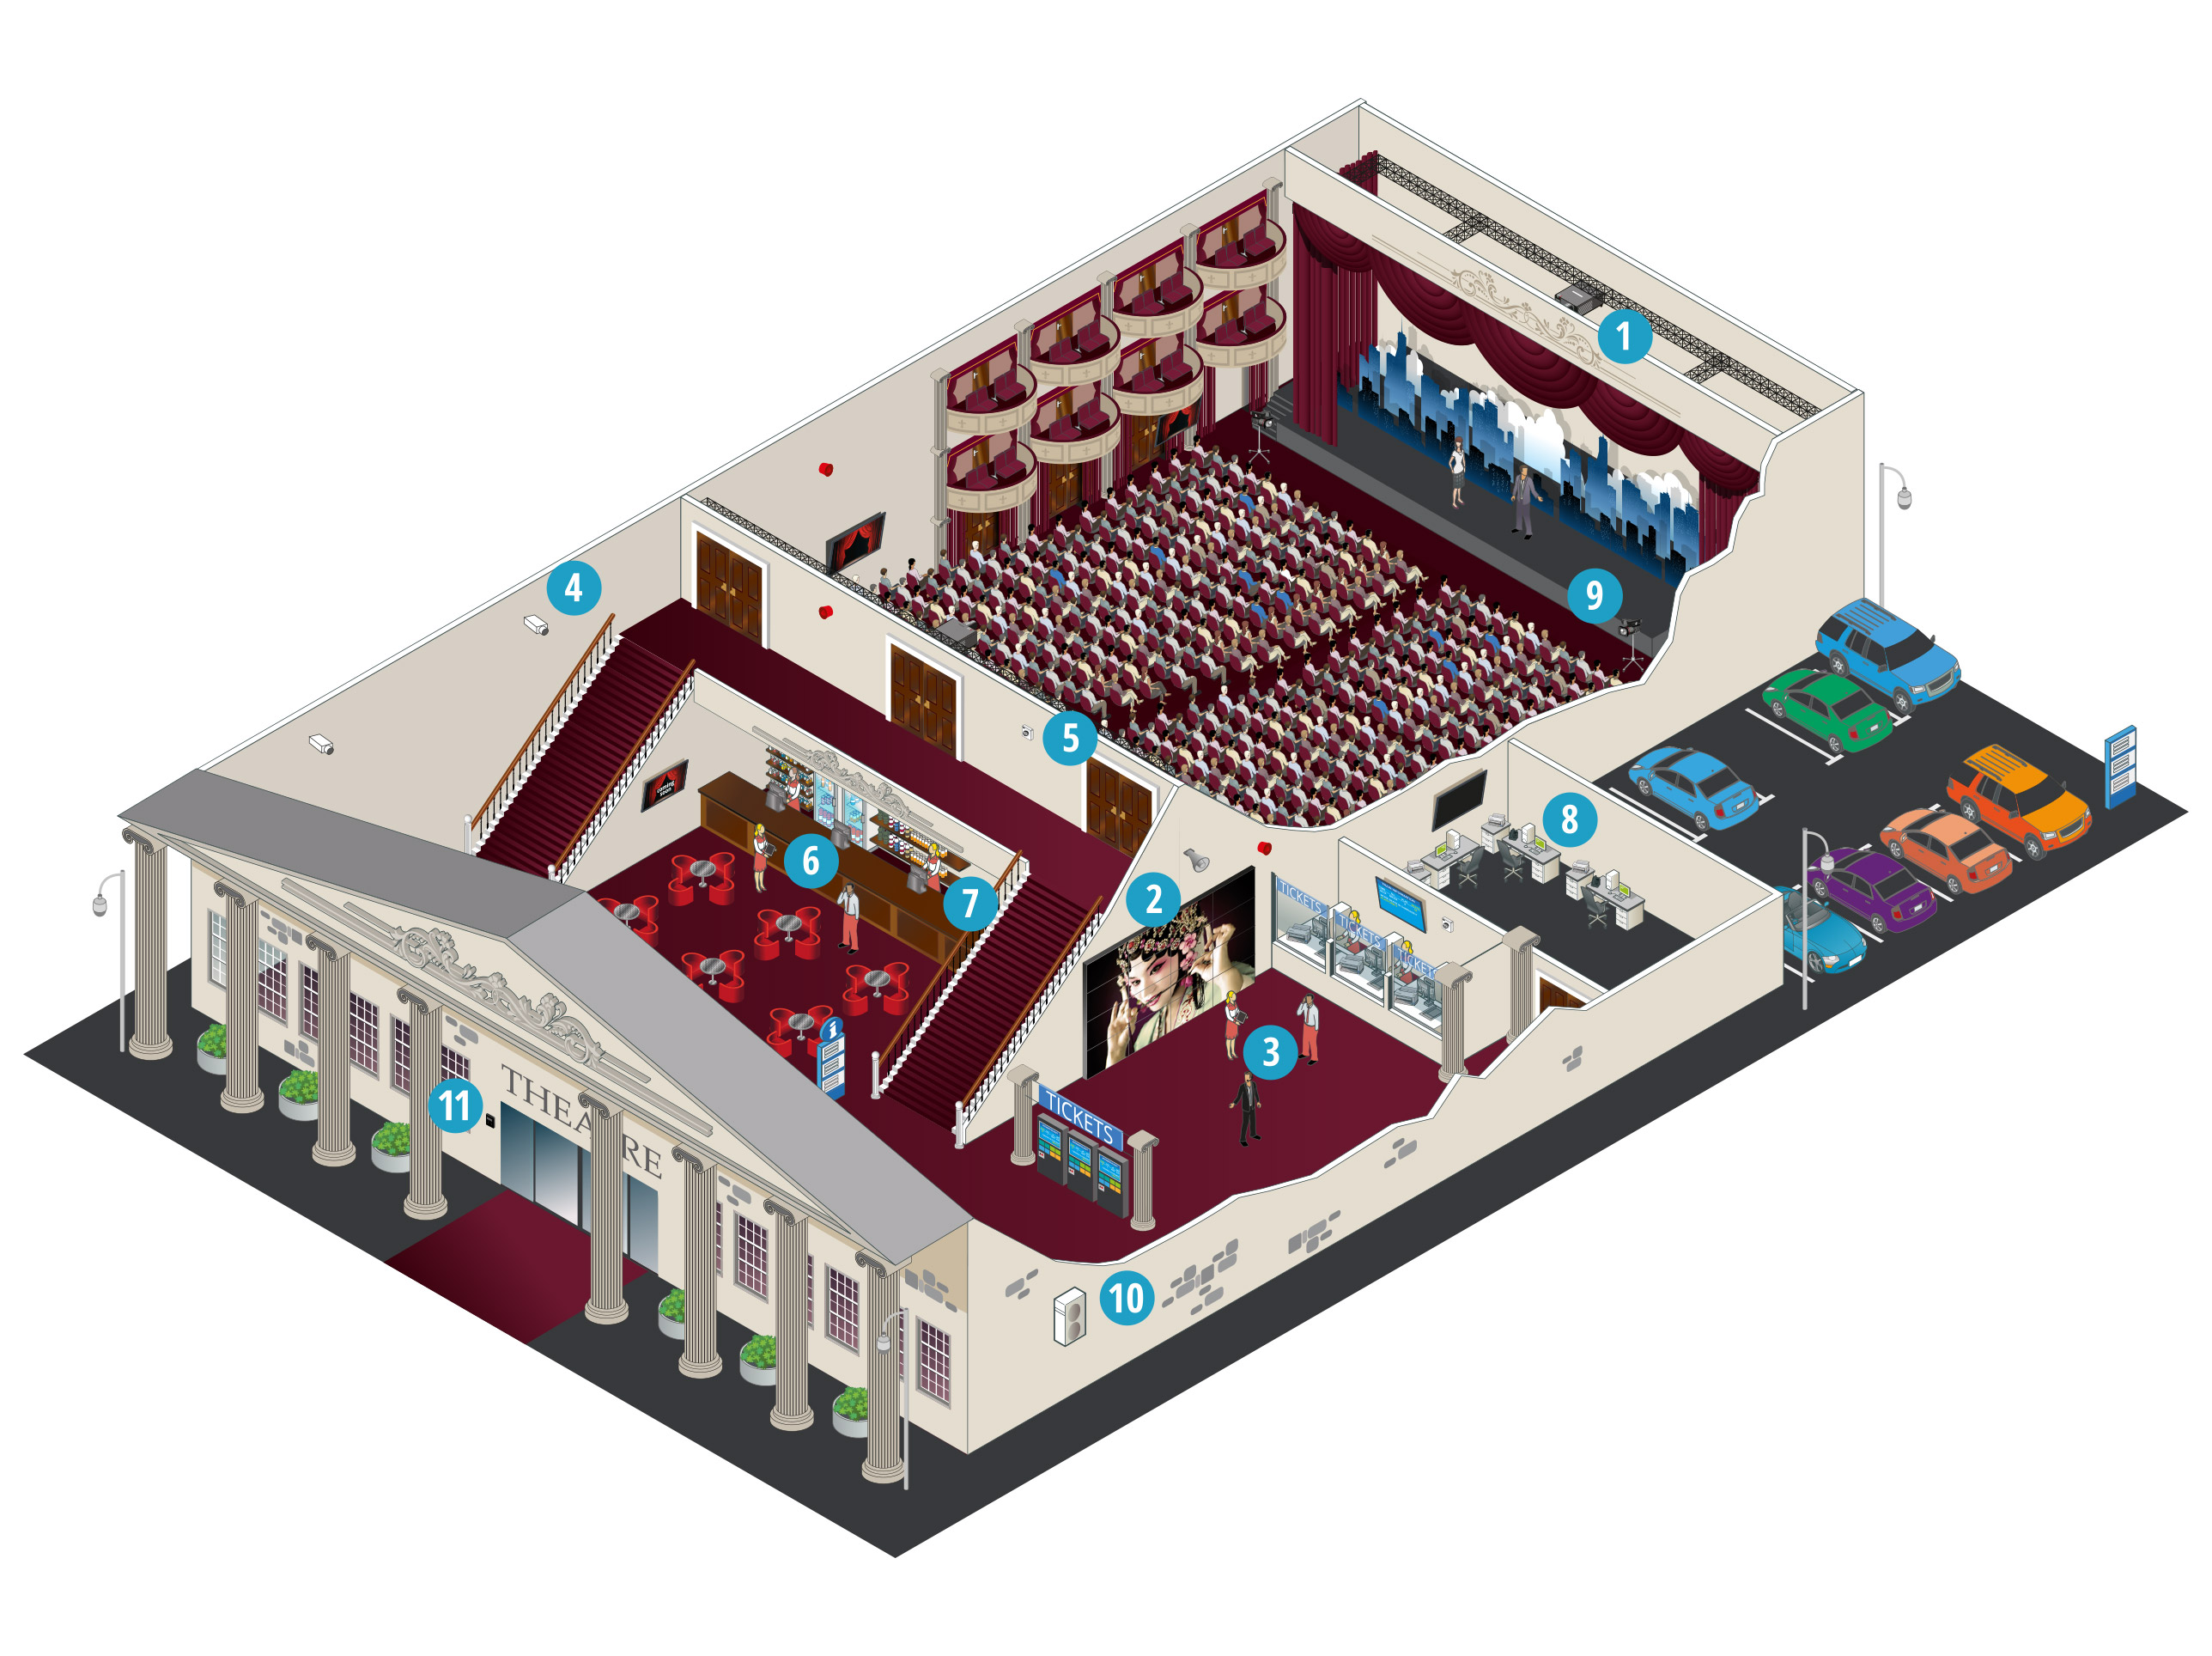 How do Panasonic solutions support theatres and cinemas?